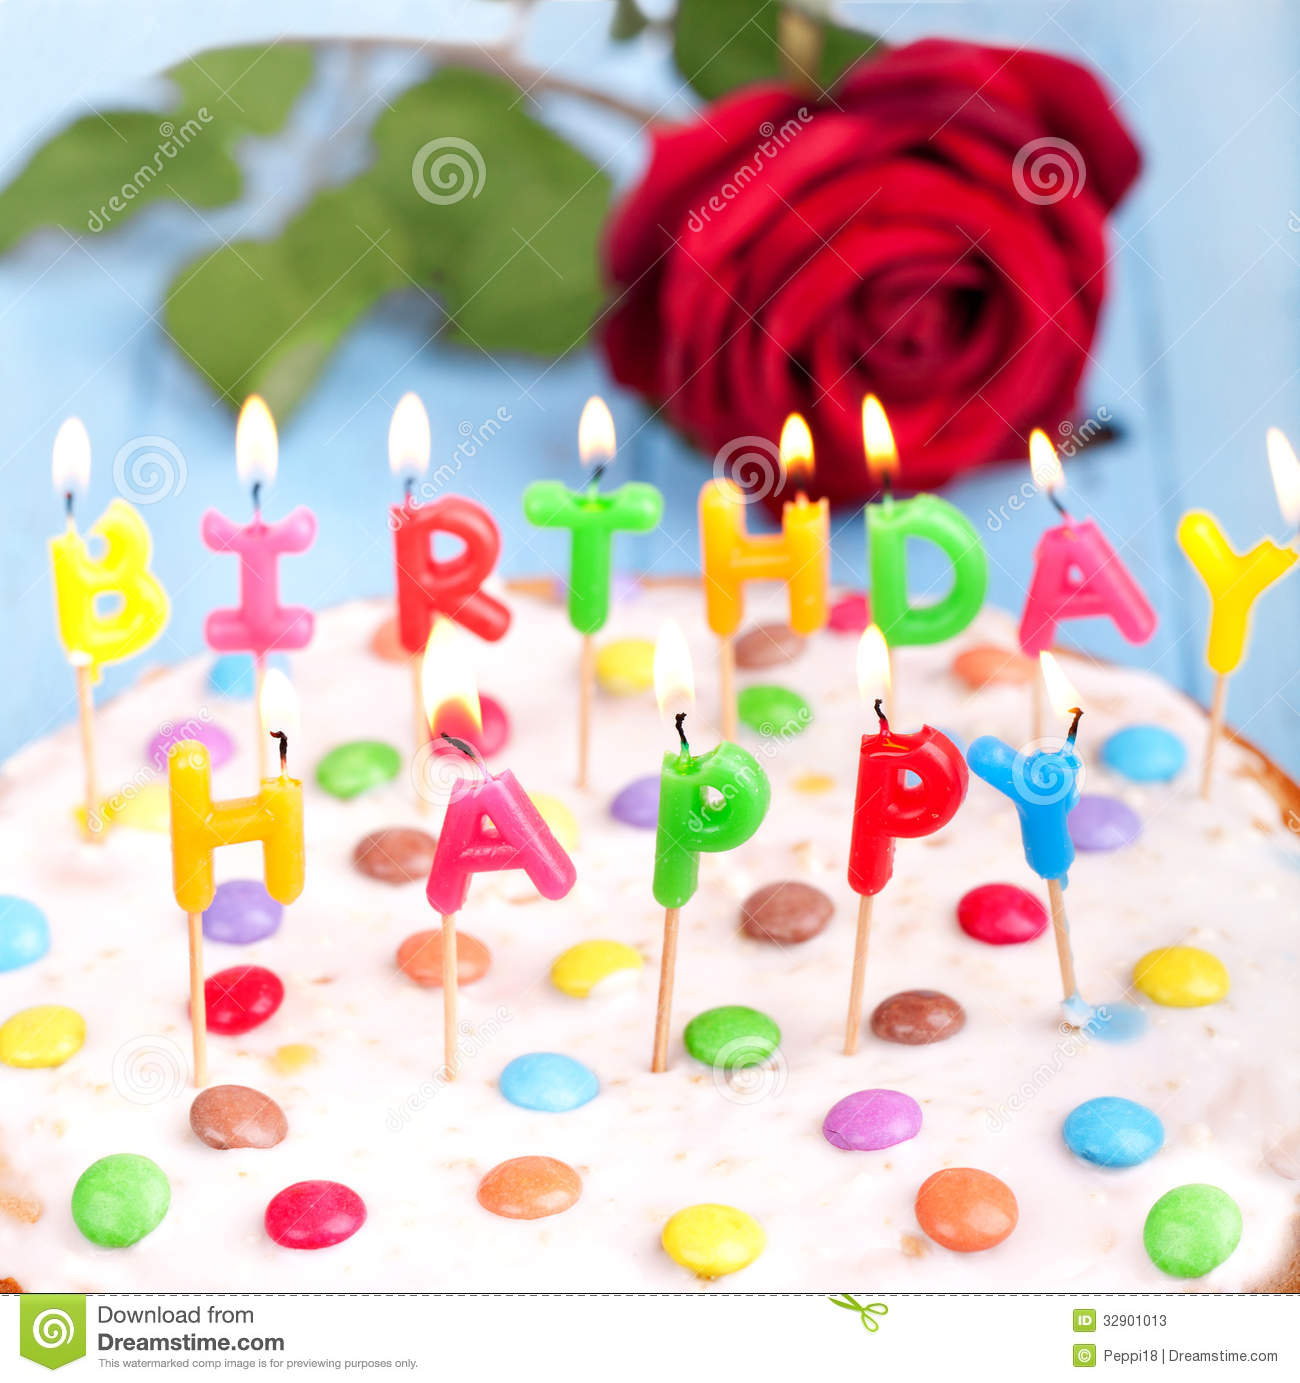 Happy Birthday Cake Stock Image Image Of Background 32901013